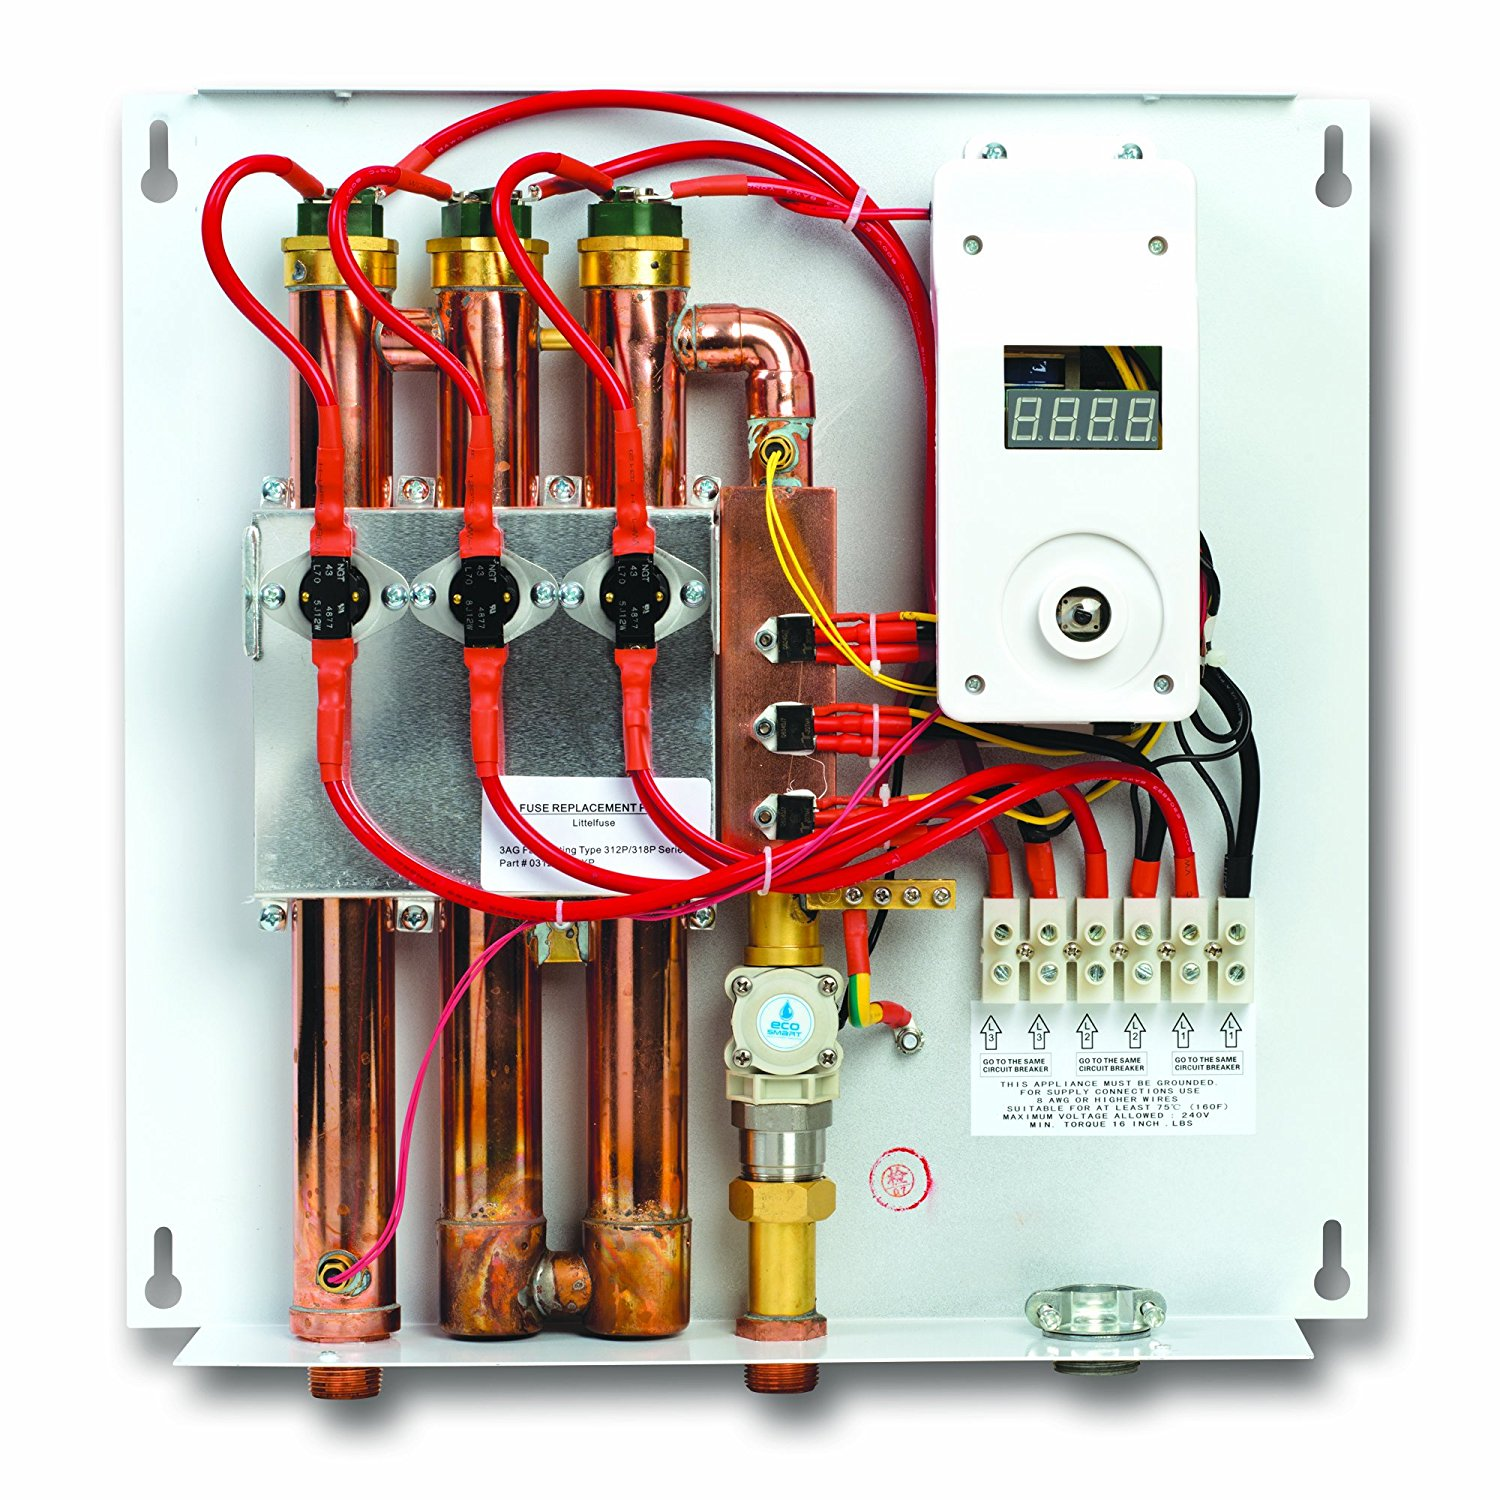 Ecosmart ECO 24 at 240-Volt Electric Tankless Water Heater